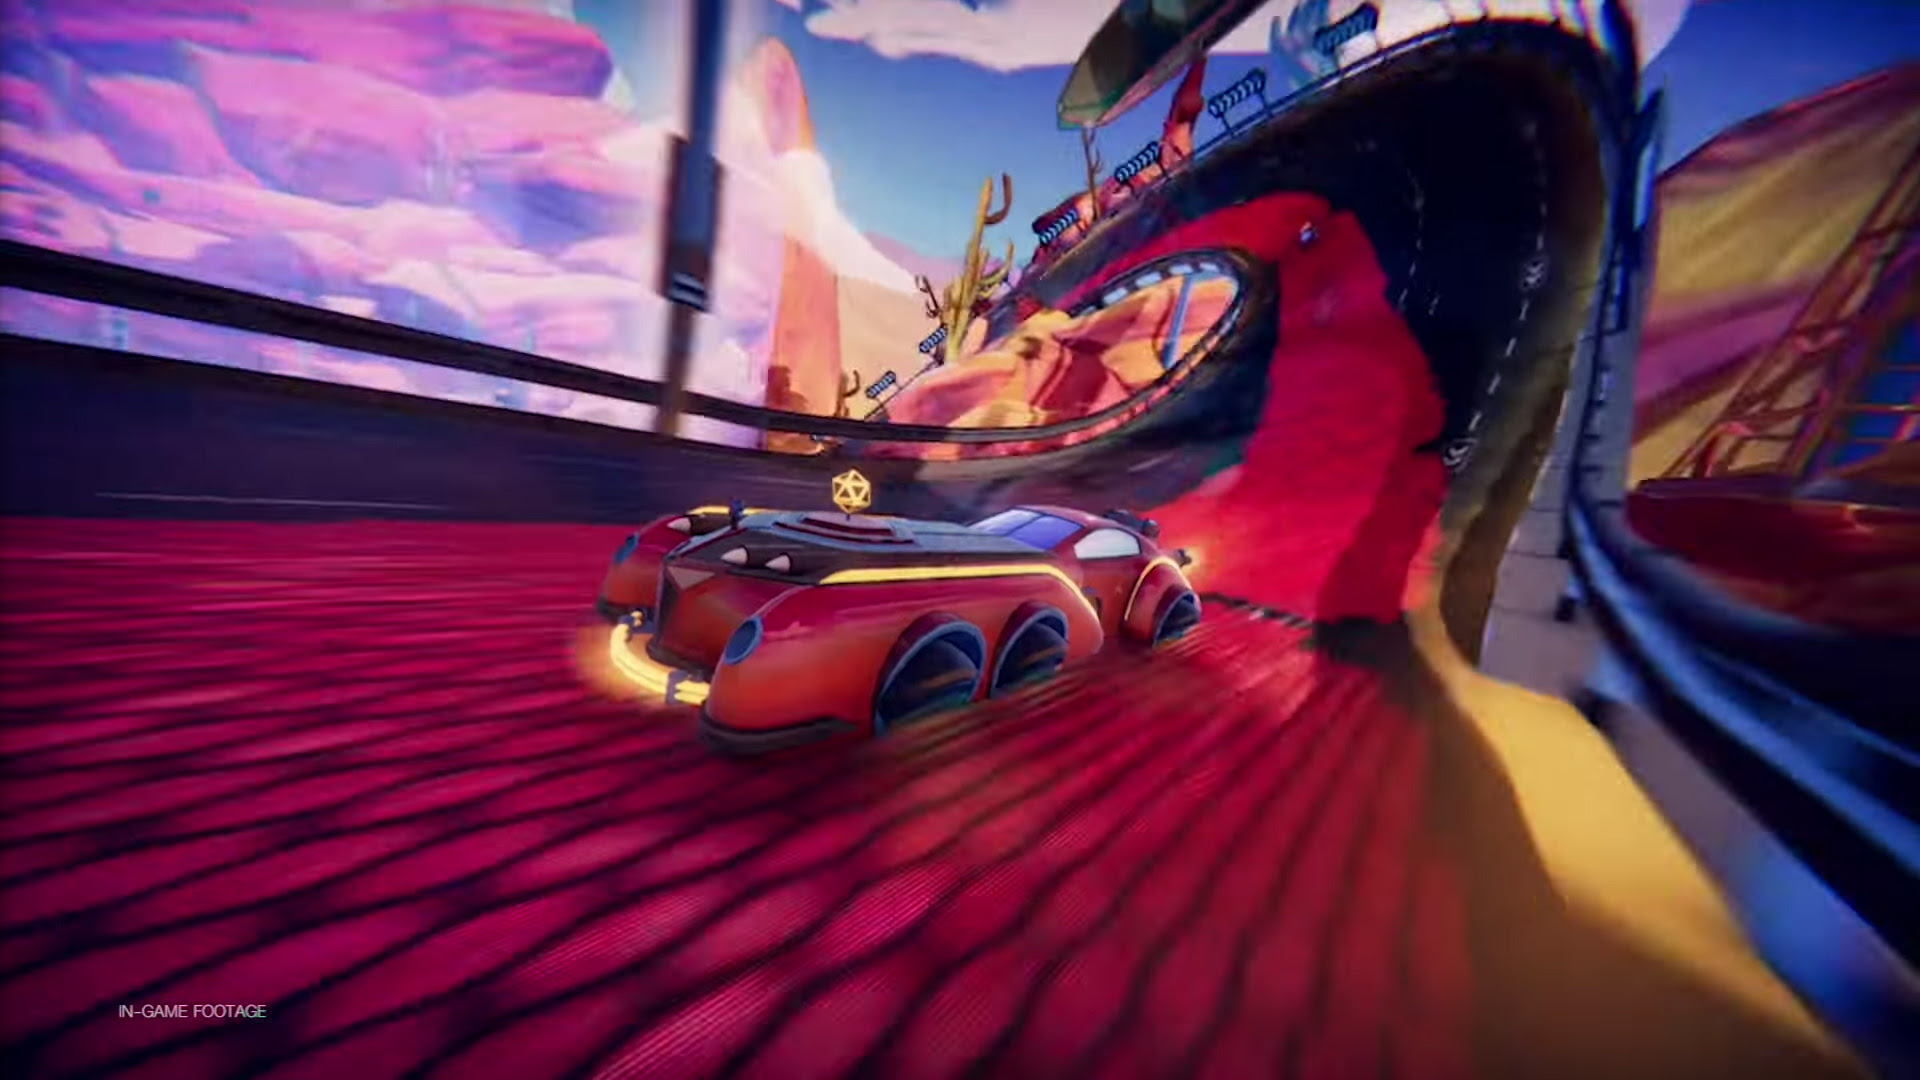 Trailblazers is a team-based racing game about painting the track screenshot